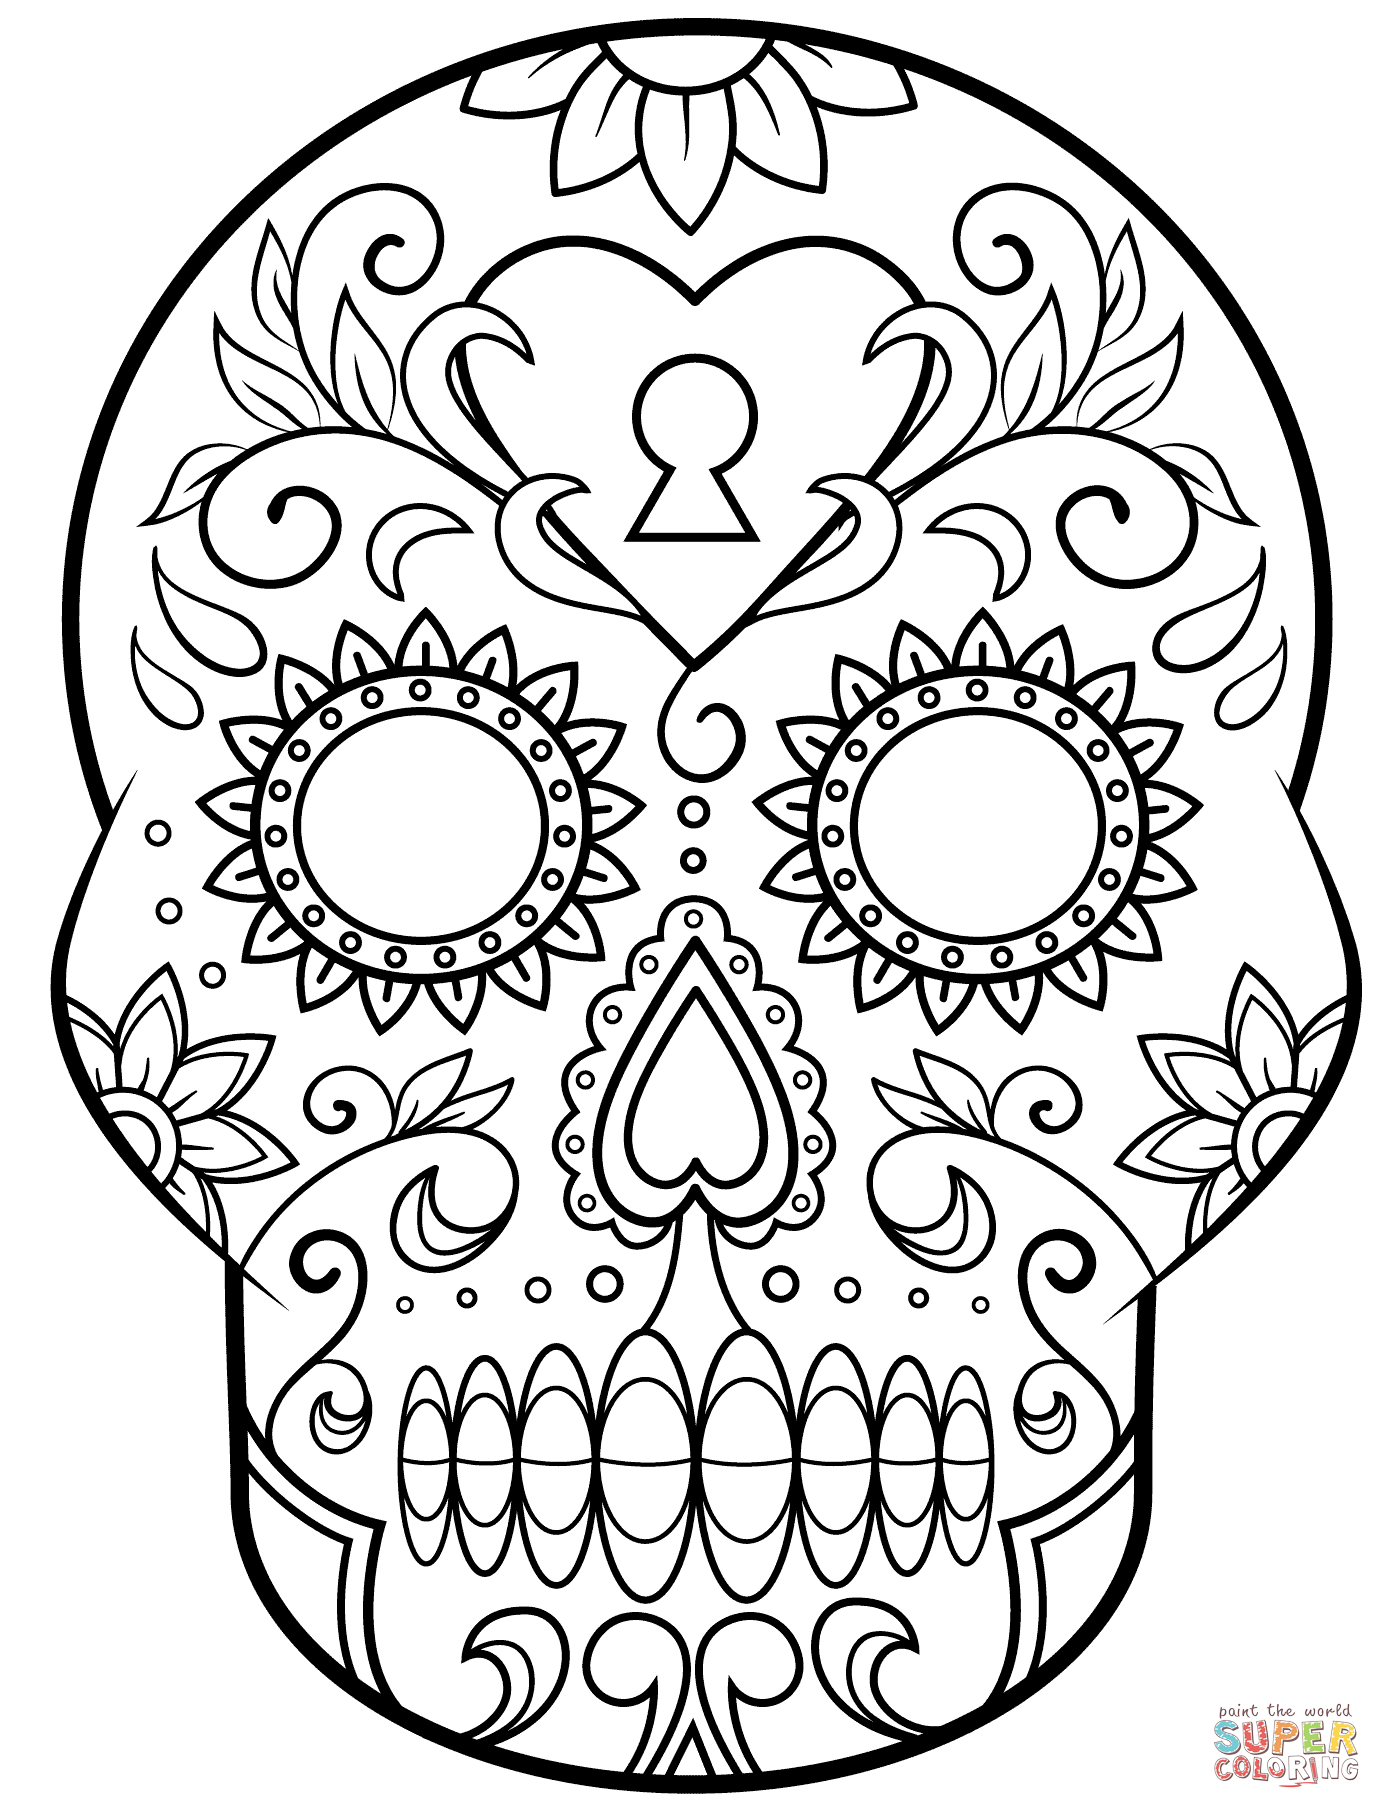 Day Of The Dead Sugar Skull Coloring Page | Free Printable - Free Printable Sugar Skull Coloring Pages